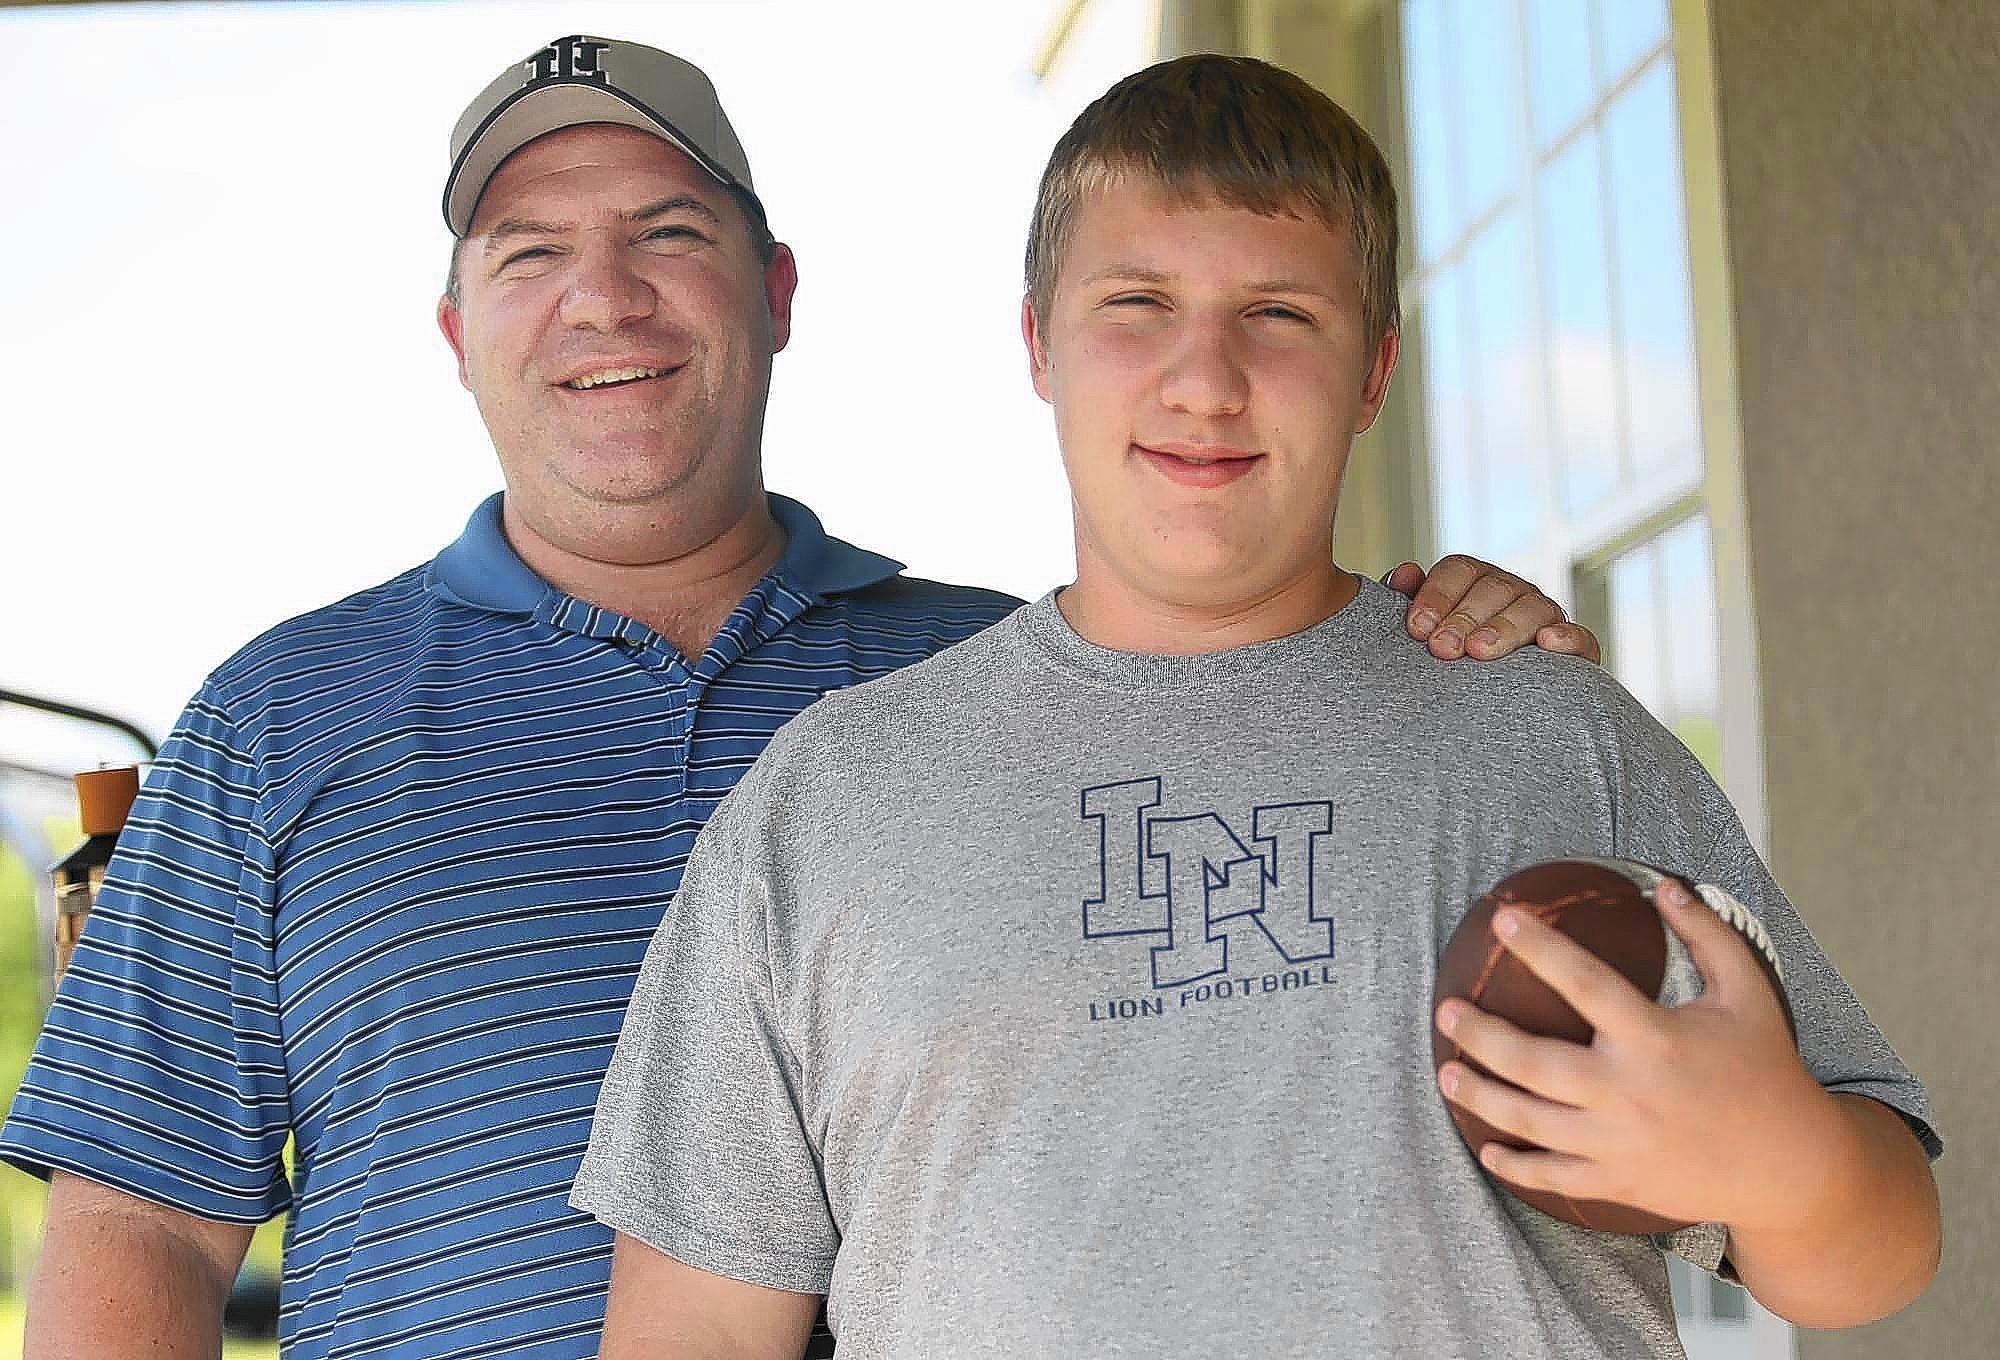 Tyler Albright, pictured with his dad Jeff, has suffered concussions playing football. The family has chosen for Tyler to continue playing football. They are picture at their Lake Nona home on Thursday, June 5, 2014.